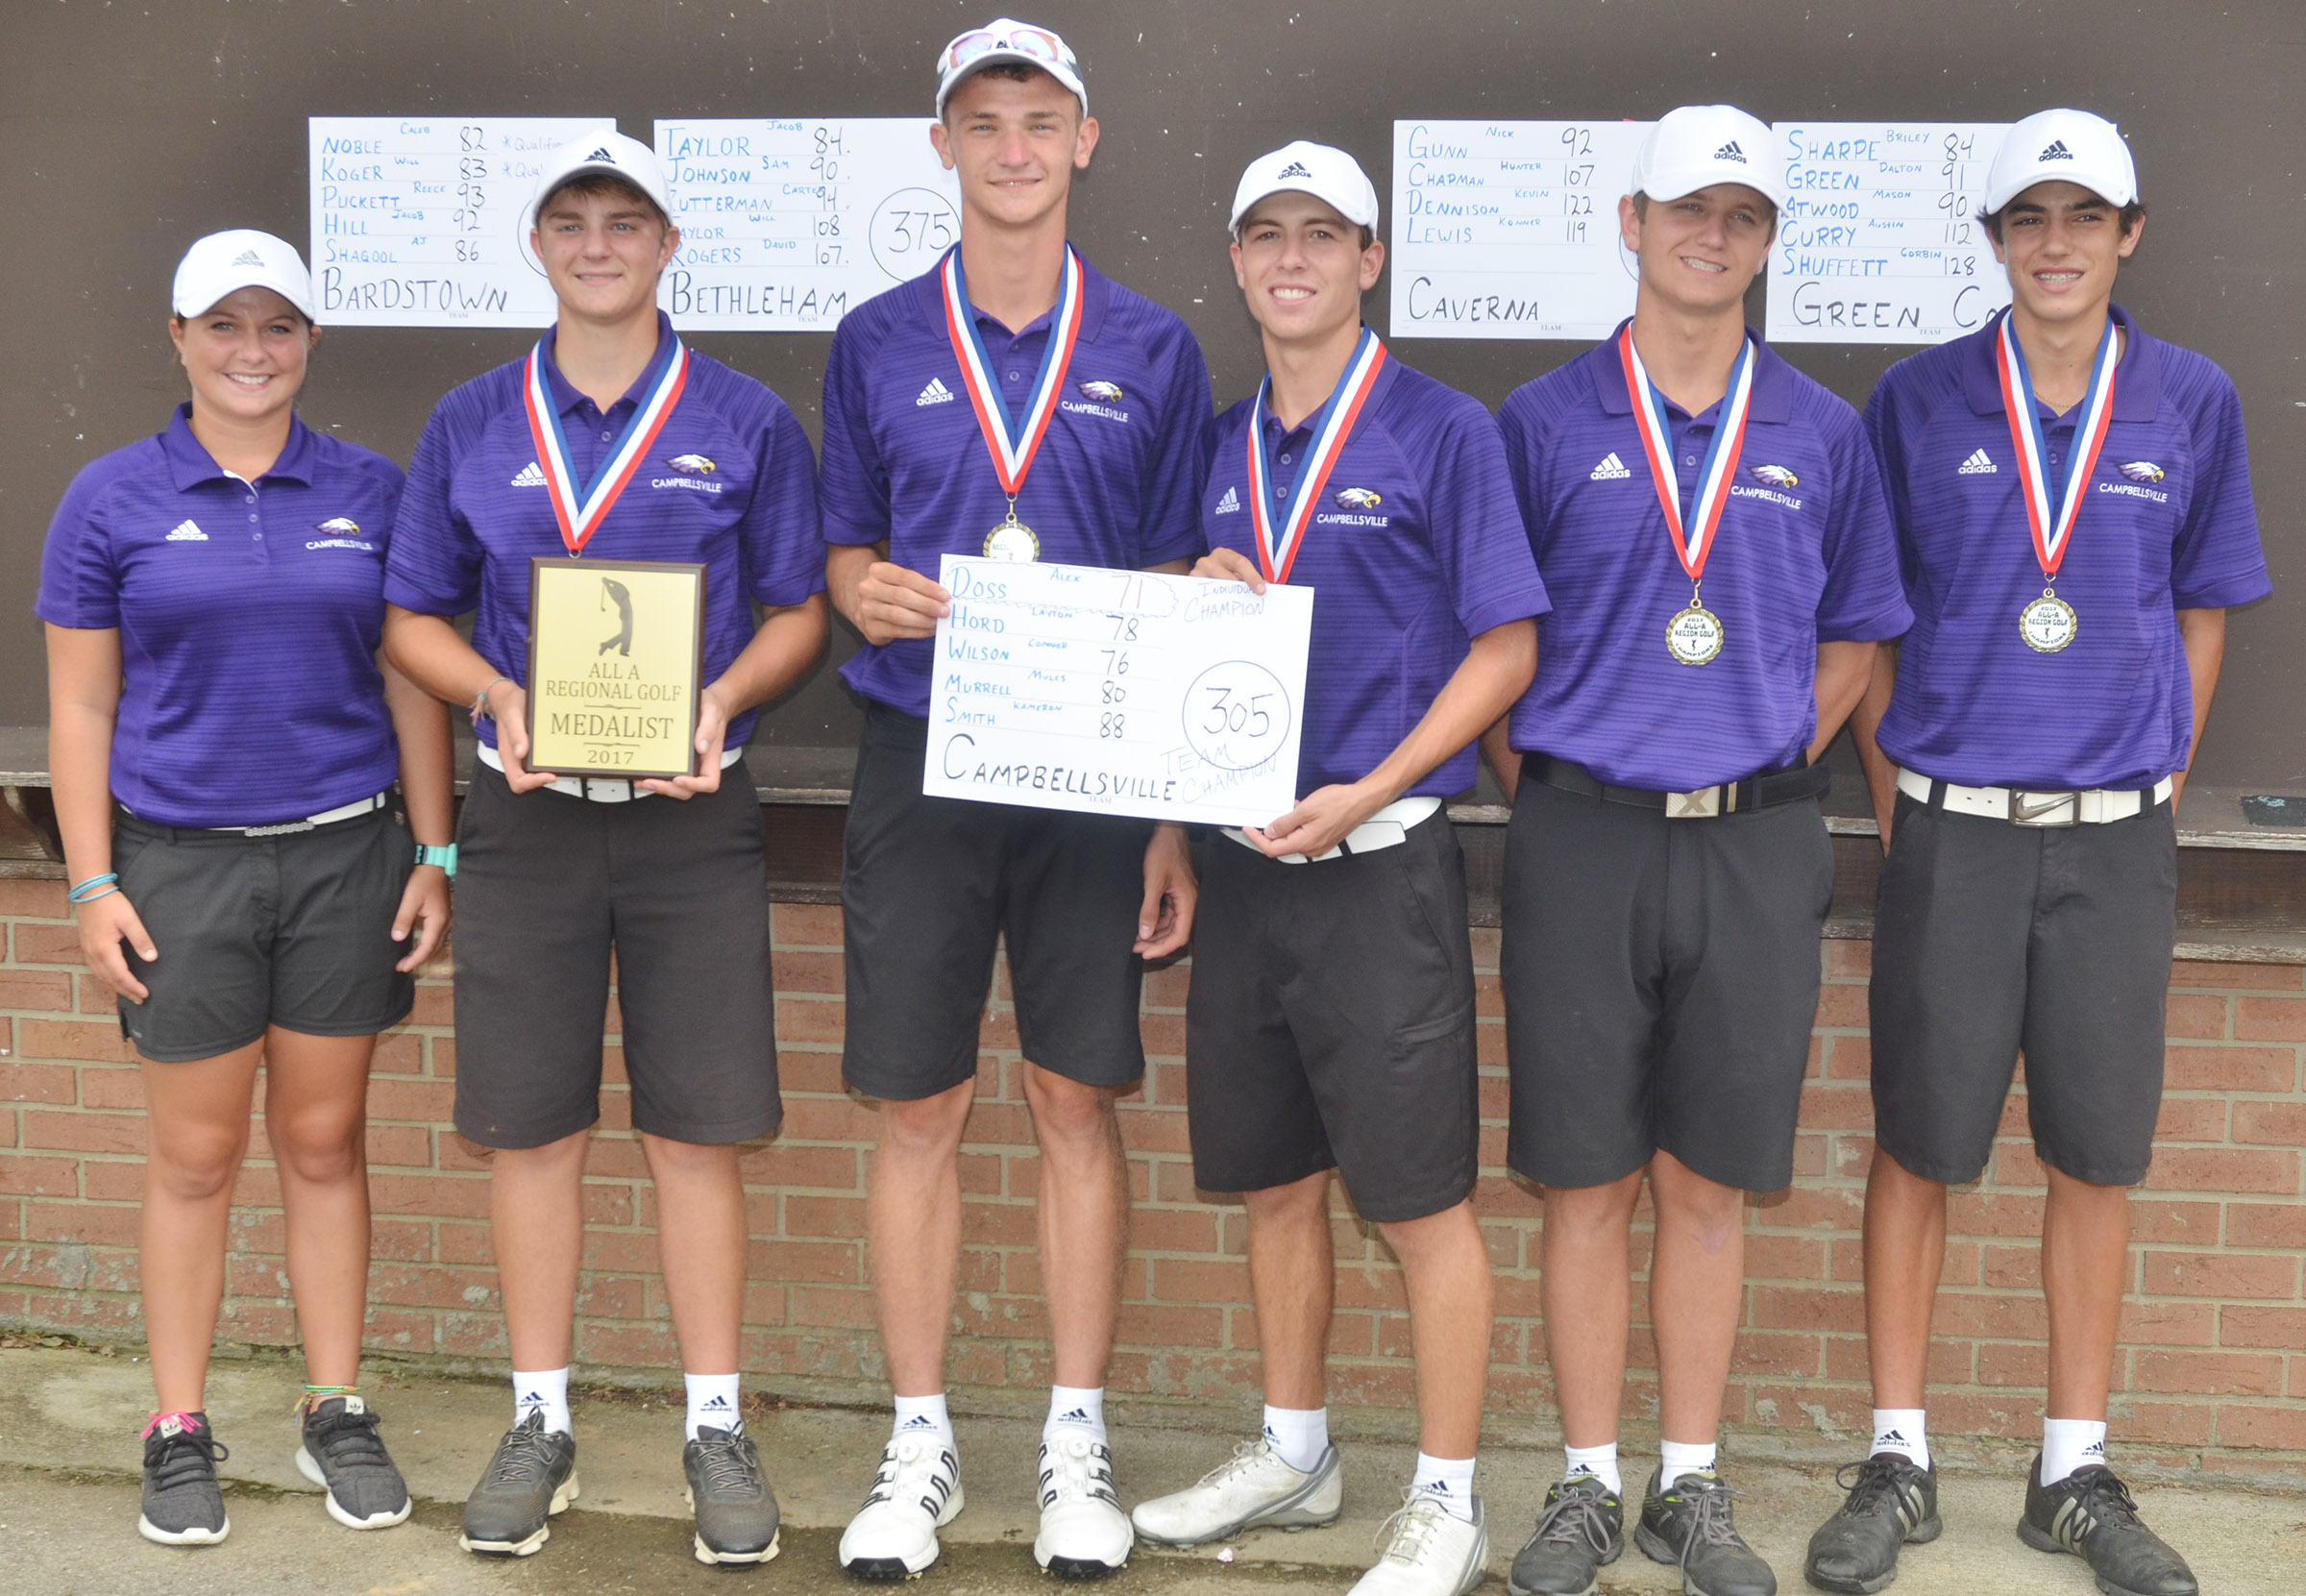 "For the third year in a row, the Campbellsville High School boys' golf team has won the All ""A"" fifth region championship, and will advance to the All ""A"" state tournament. From left are coach Cassidy Decker, seniors Alex Doss and Connor Wilson, juniors Layton Hord and Myles Murrell and freshman Kameron Smith. Doss was the overall individual winner, finishing 18 holes in 71 strokes."